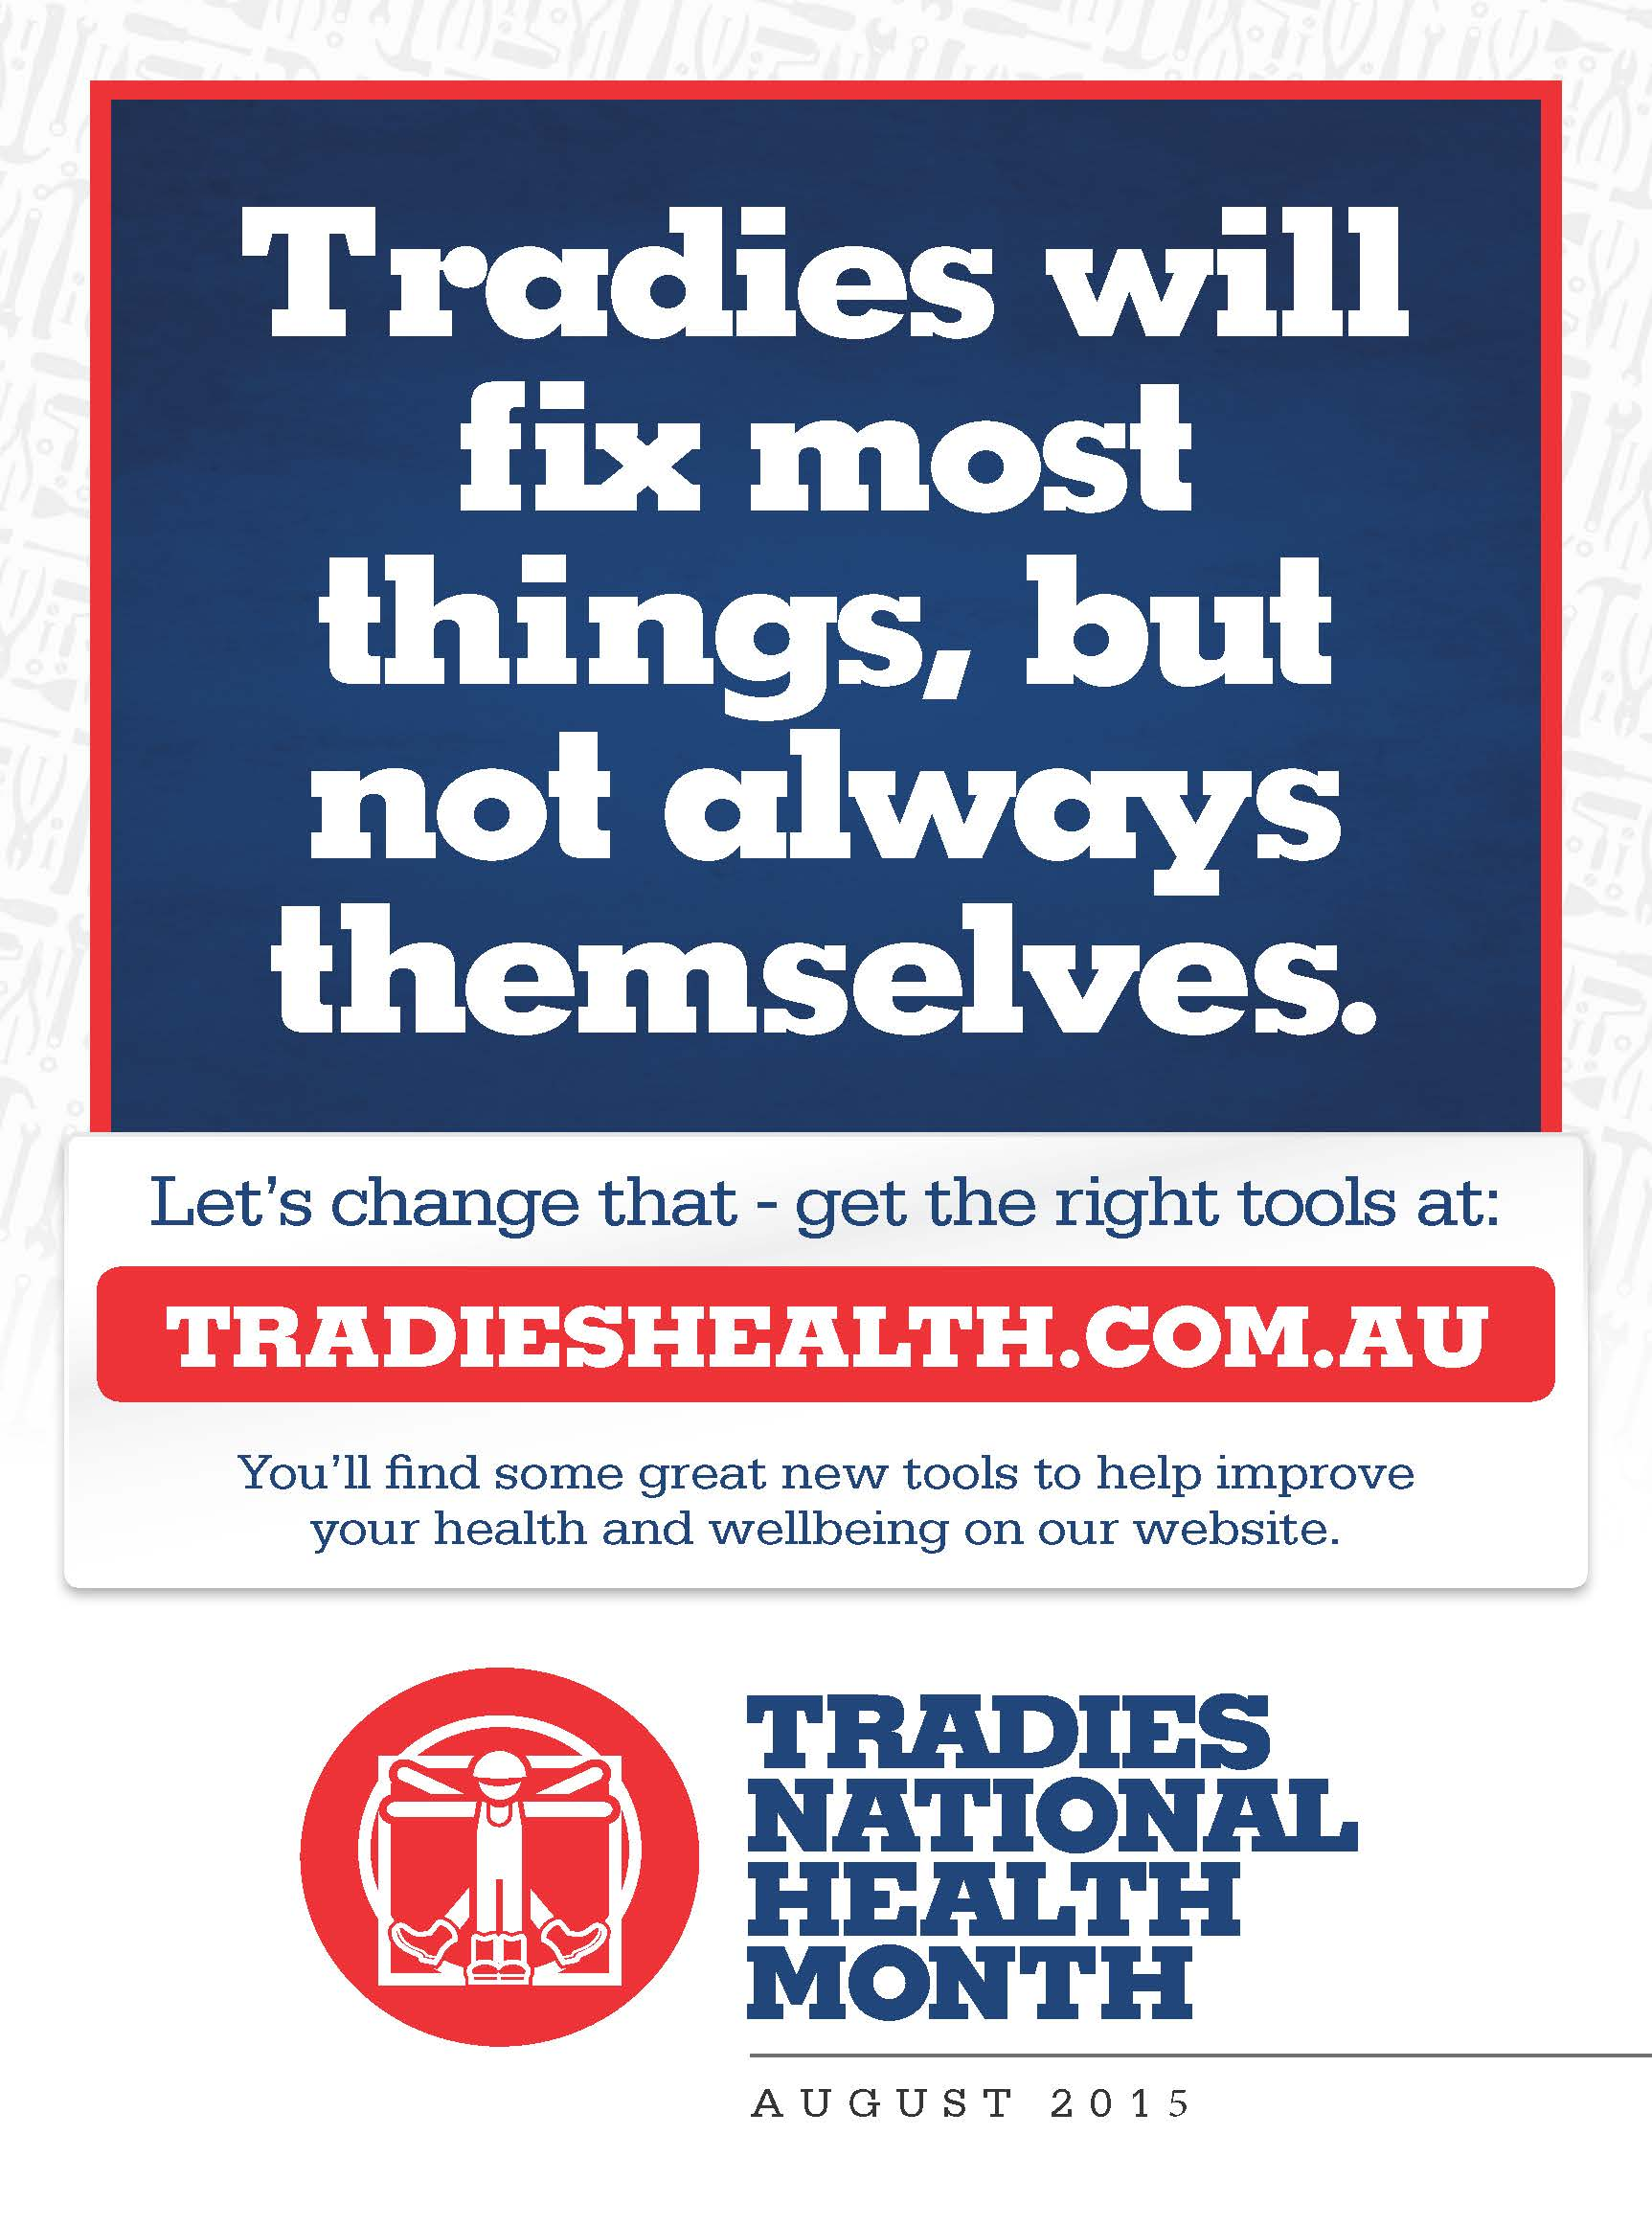 Tradies Health Month